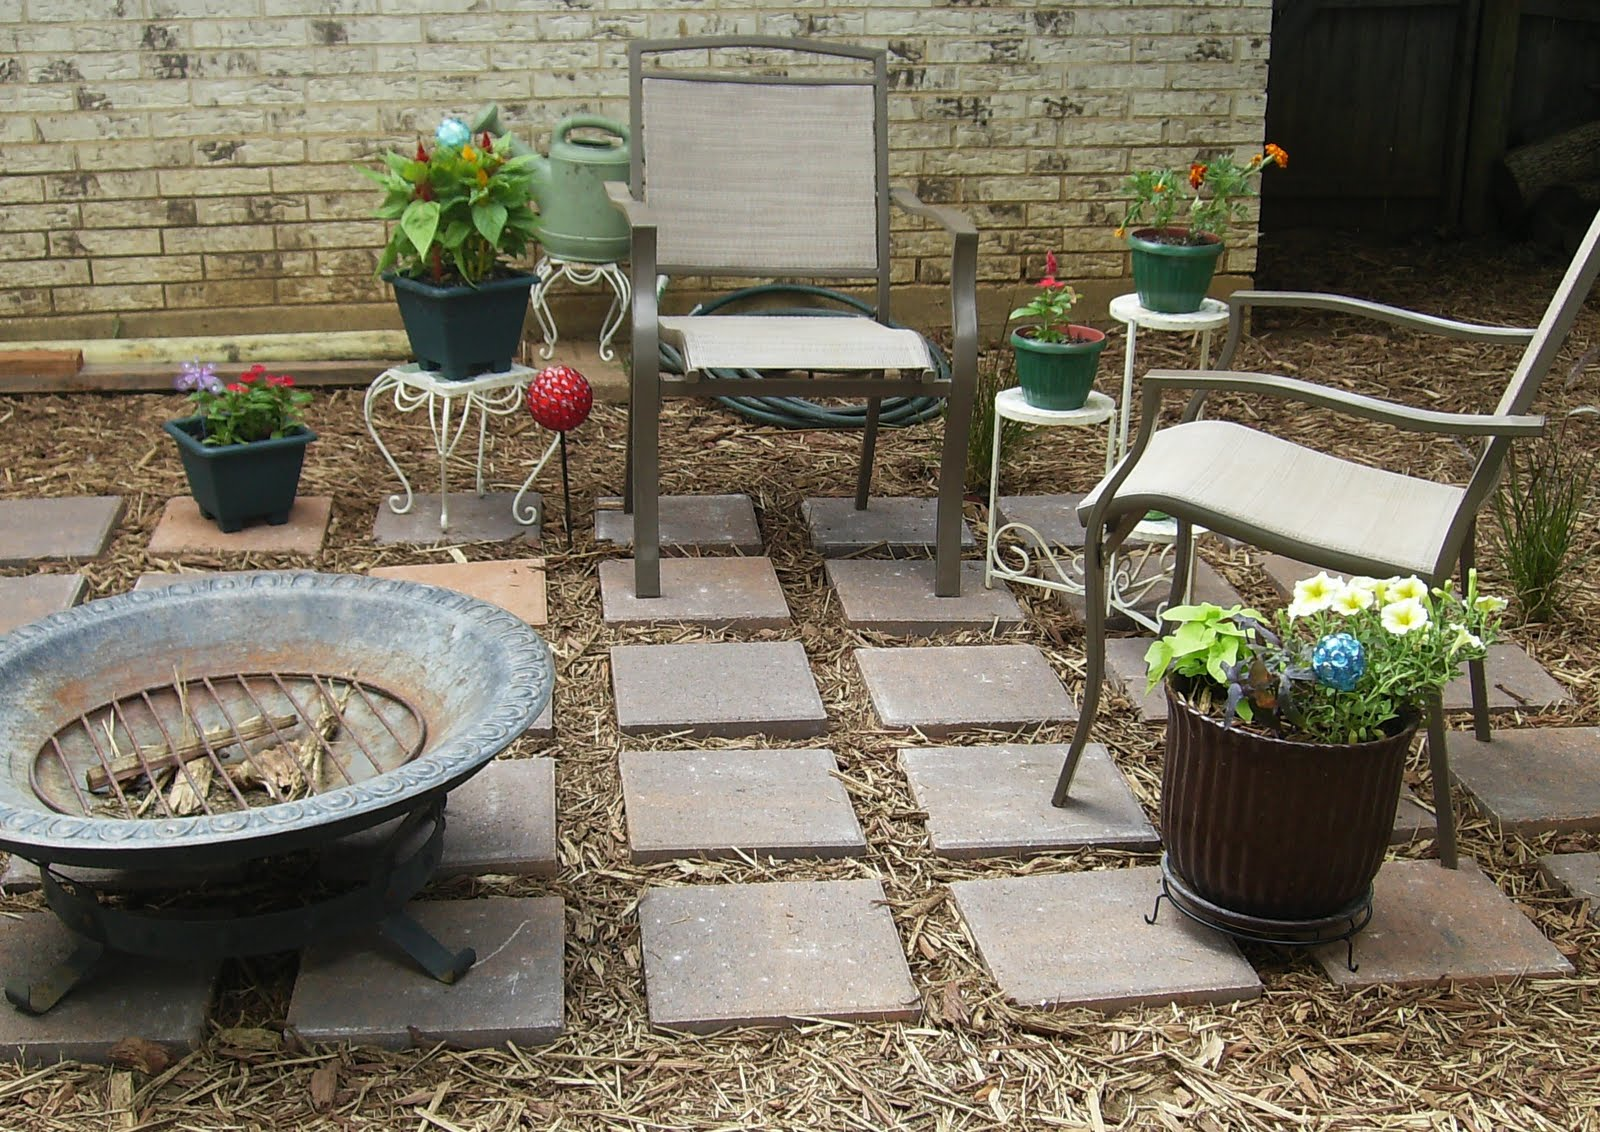 Backyard Design Ideas Diy : Plus, it was super cheap and we did it all in 2 days!